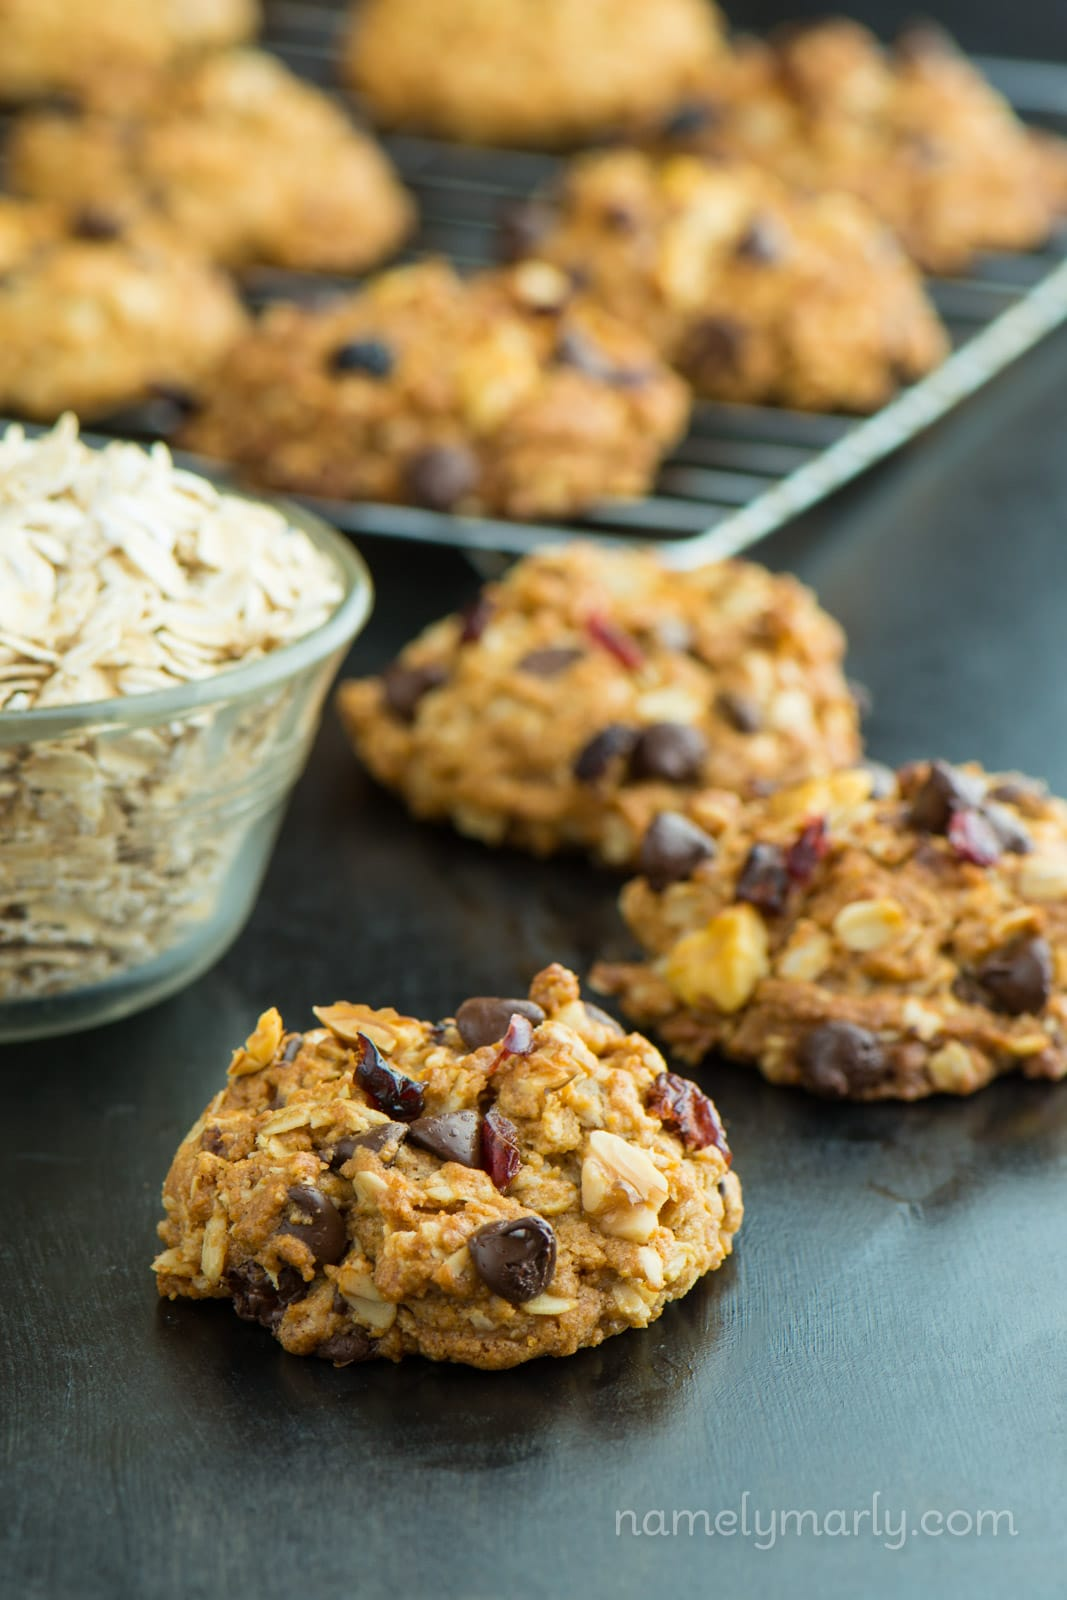 Chewy Oatmeal Chocolate Chip Cookies - Namely Marly